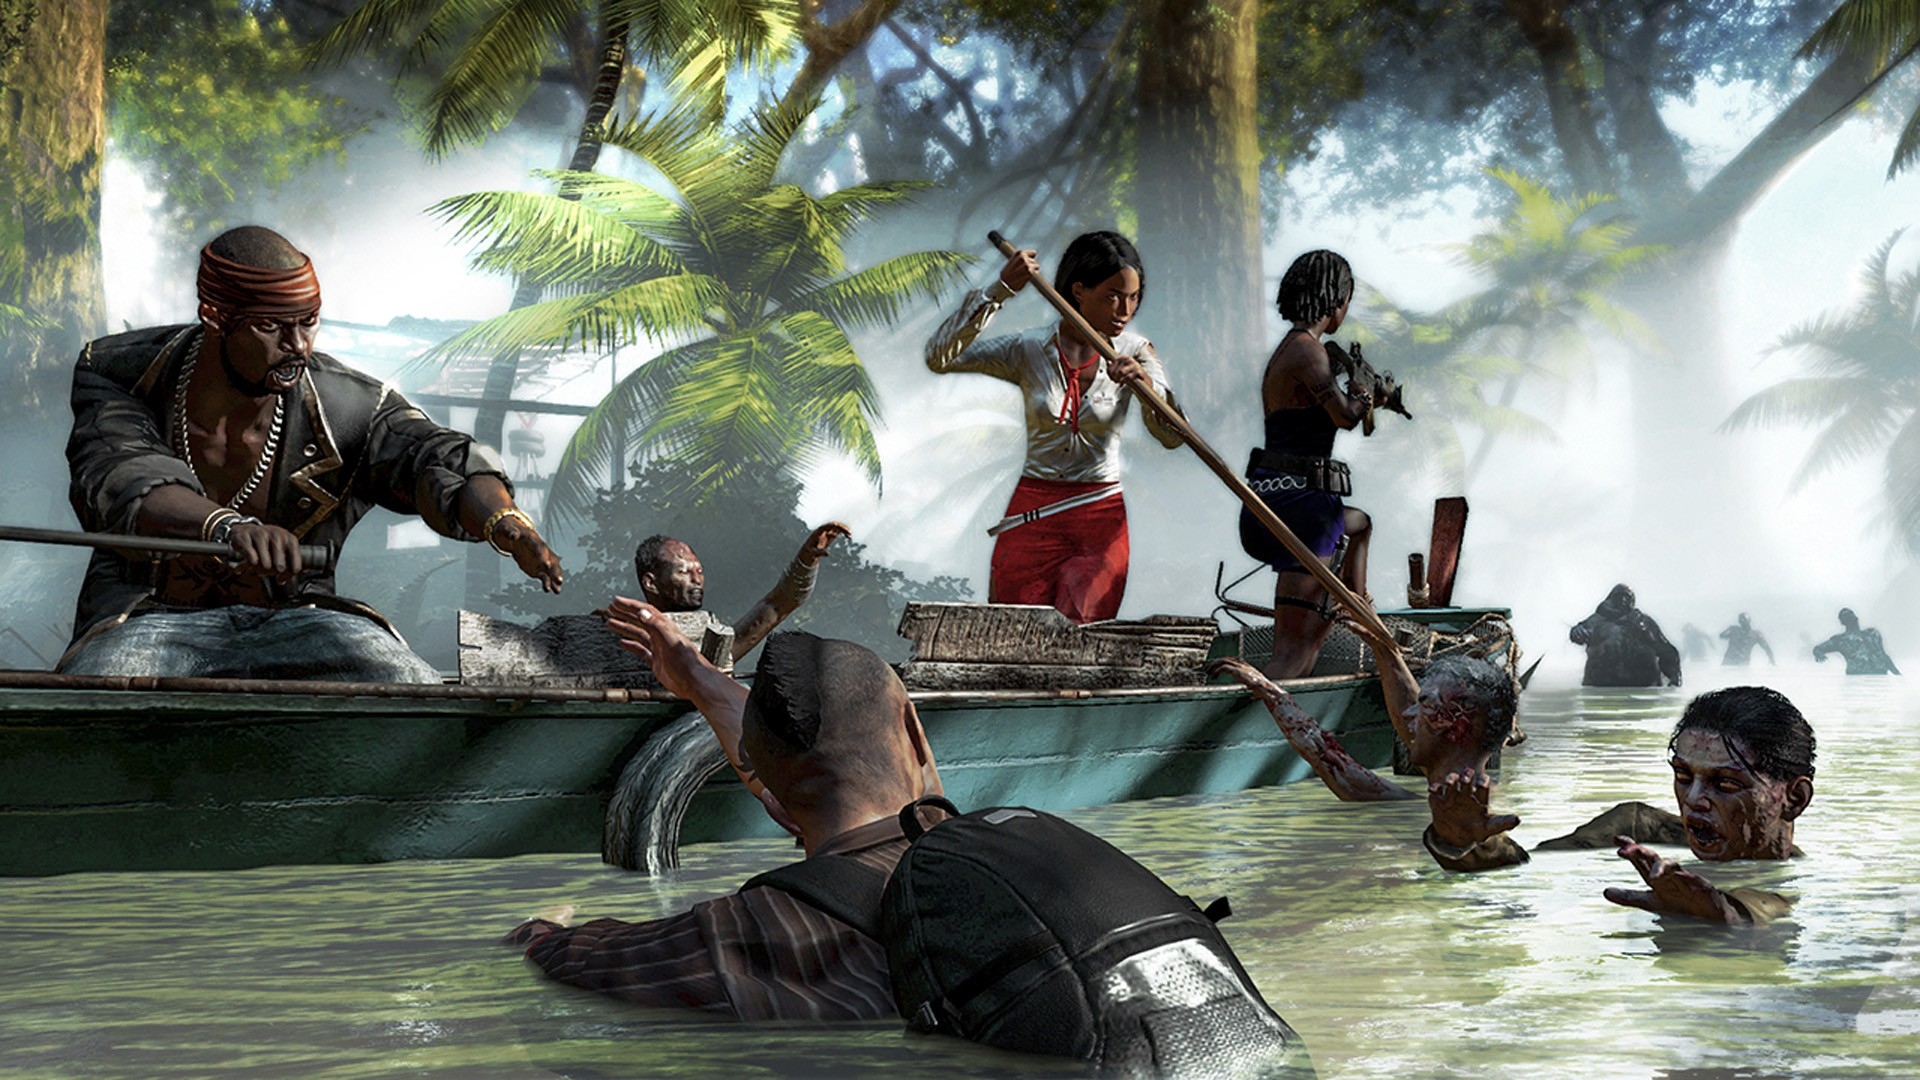 Dead Island Riptide Full HD Wallpaper And Background Image